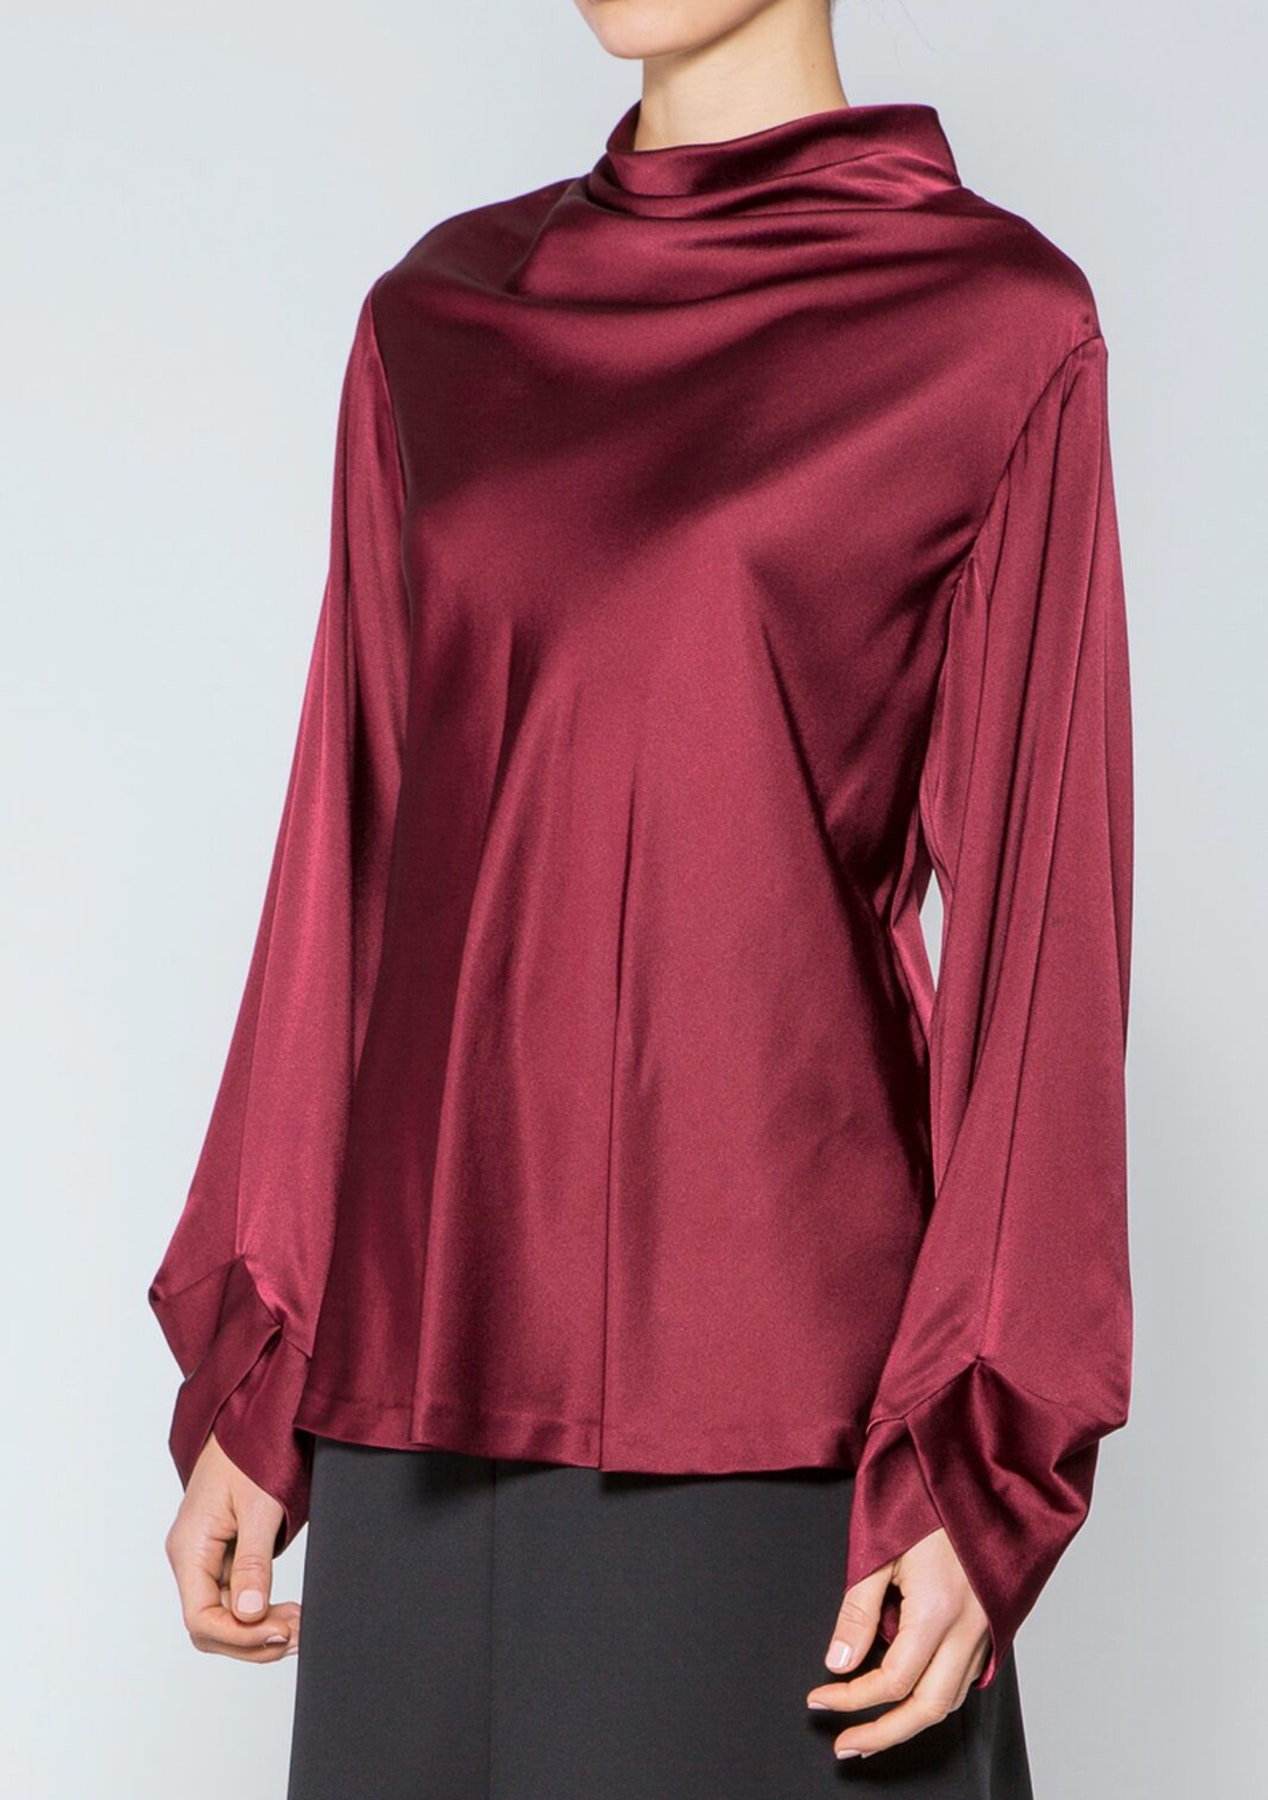 06255e5f64c26 Acler - Maddern Silk Blouse - Plum - Acler - Onceit